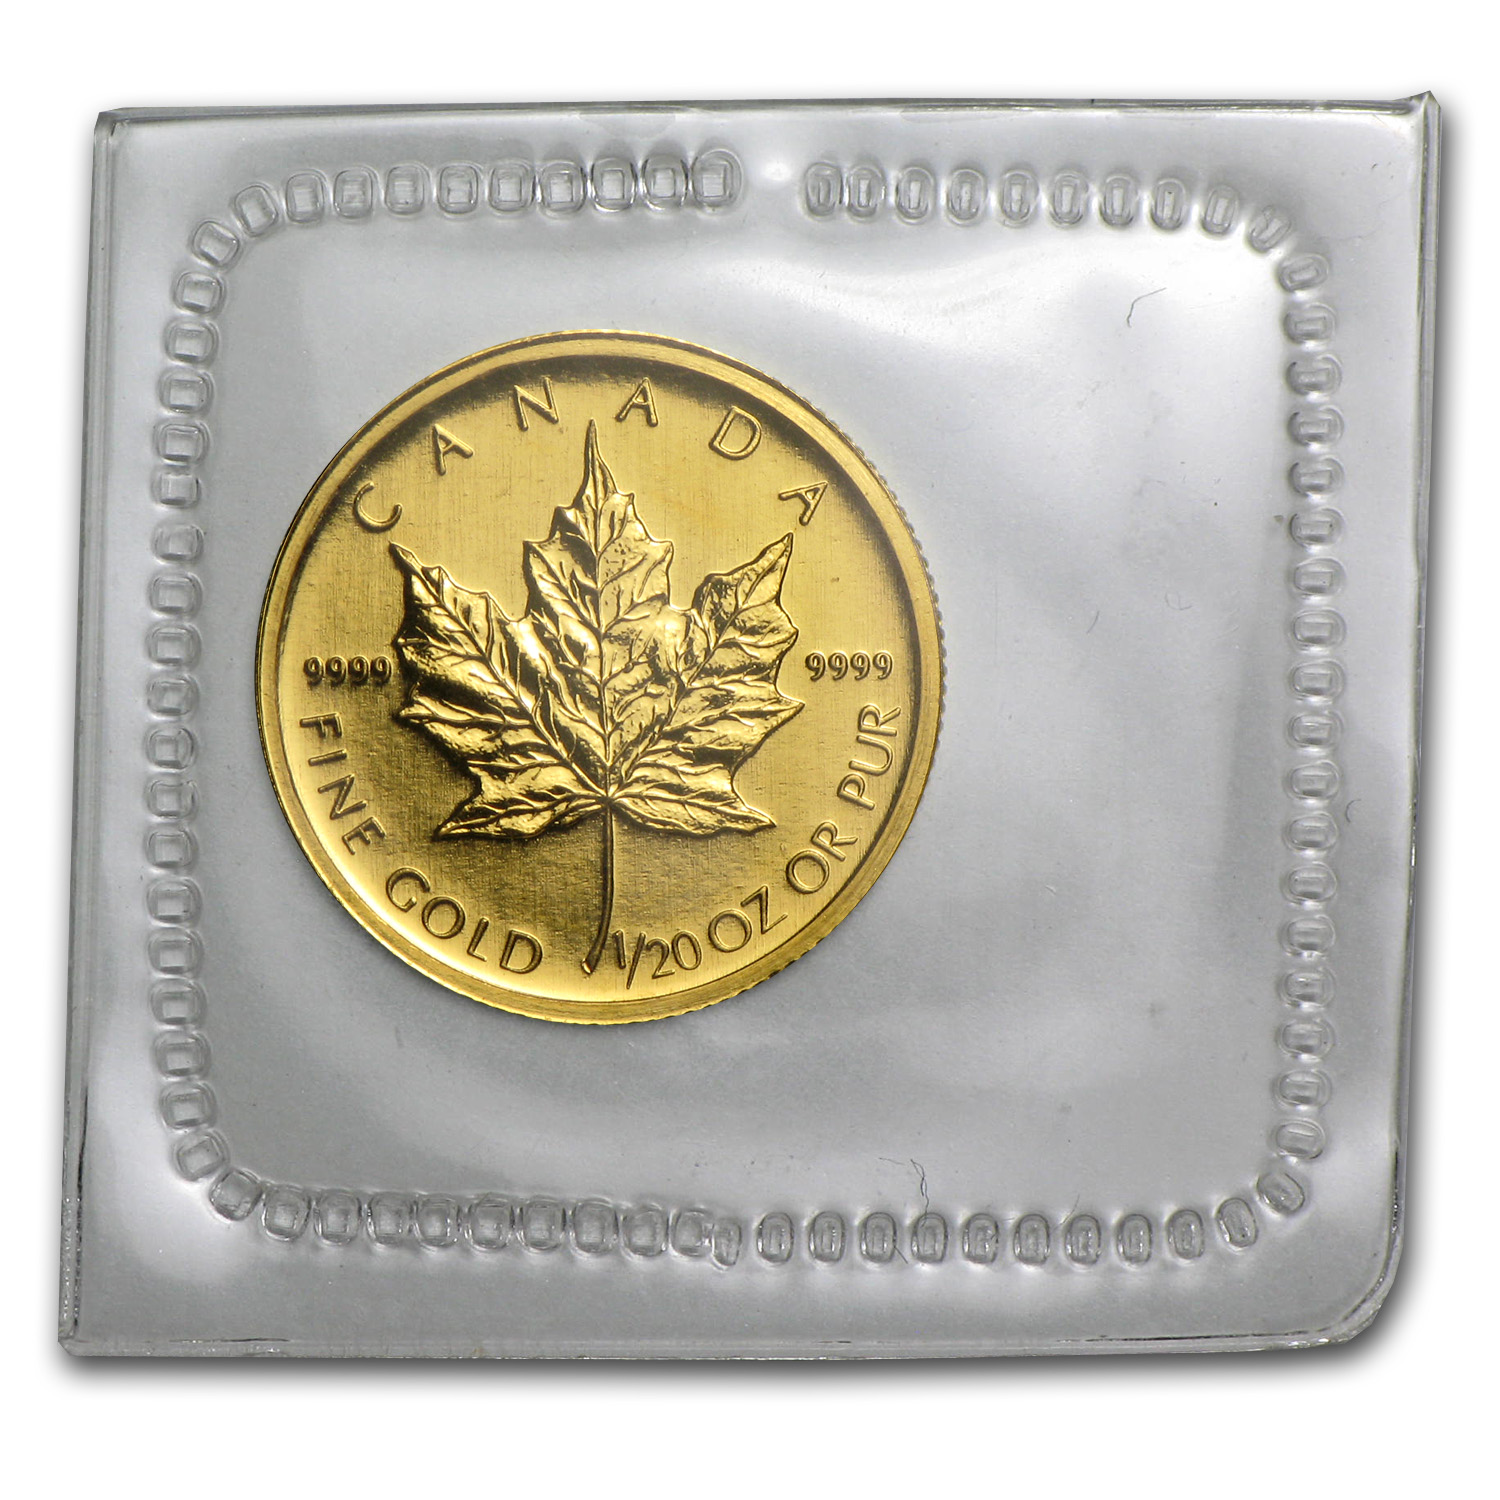 2009 1/20 oz Gold Canadian Maple Leaf